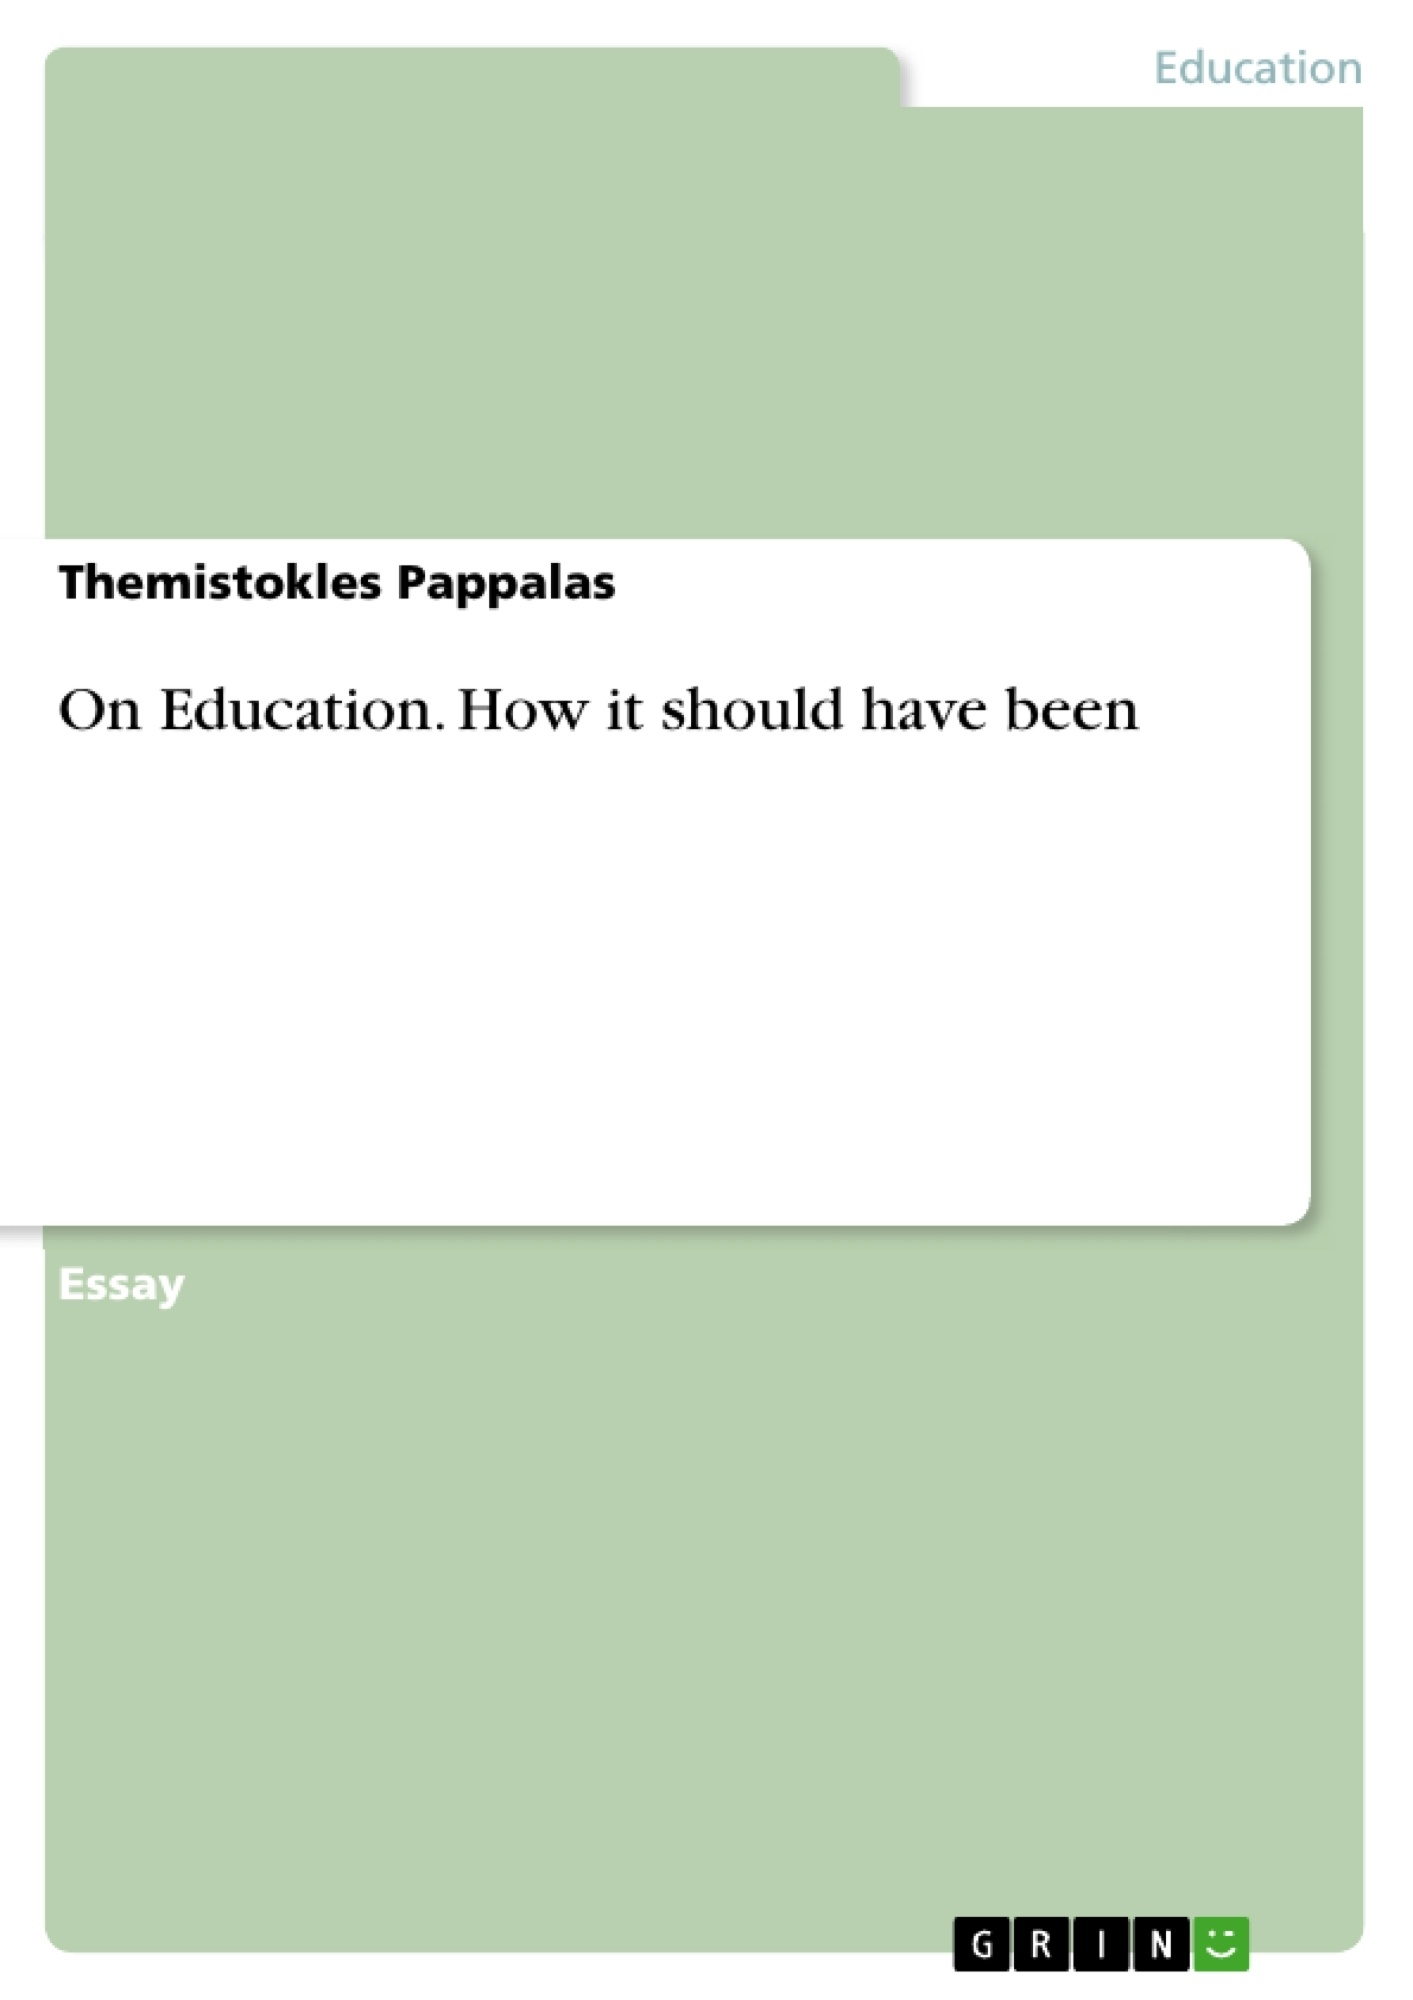 Title: On Education. How it should have been